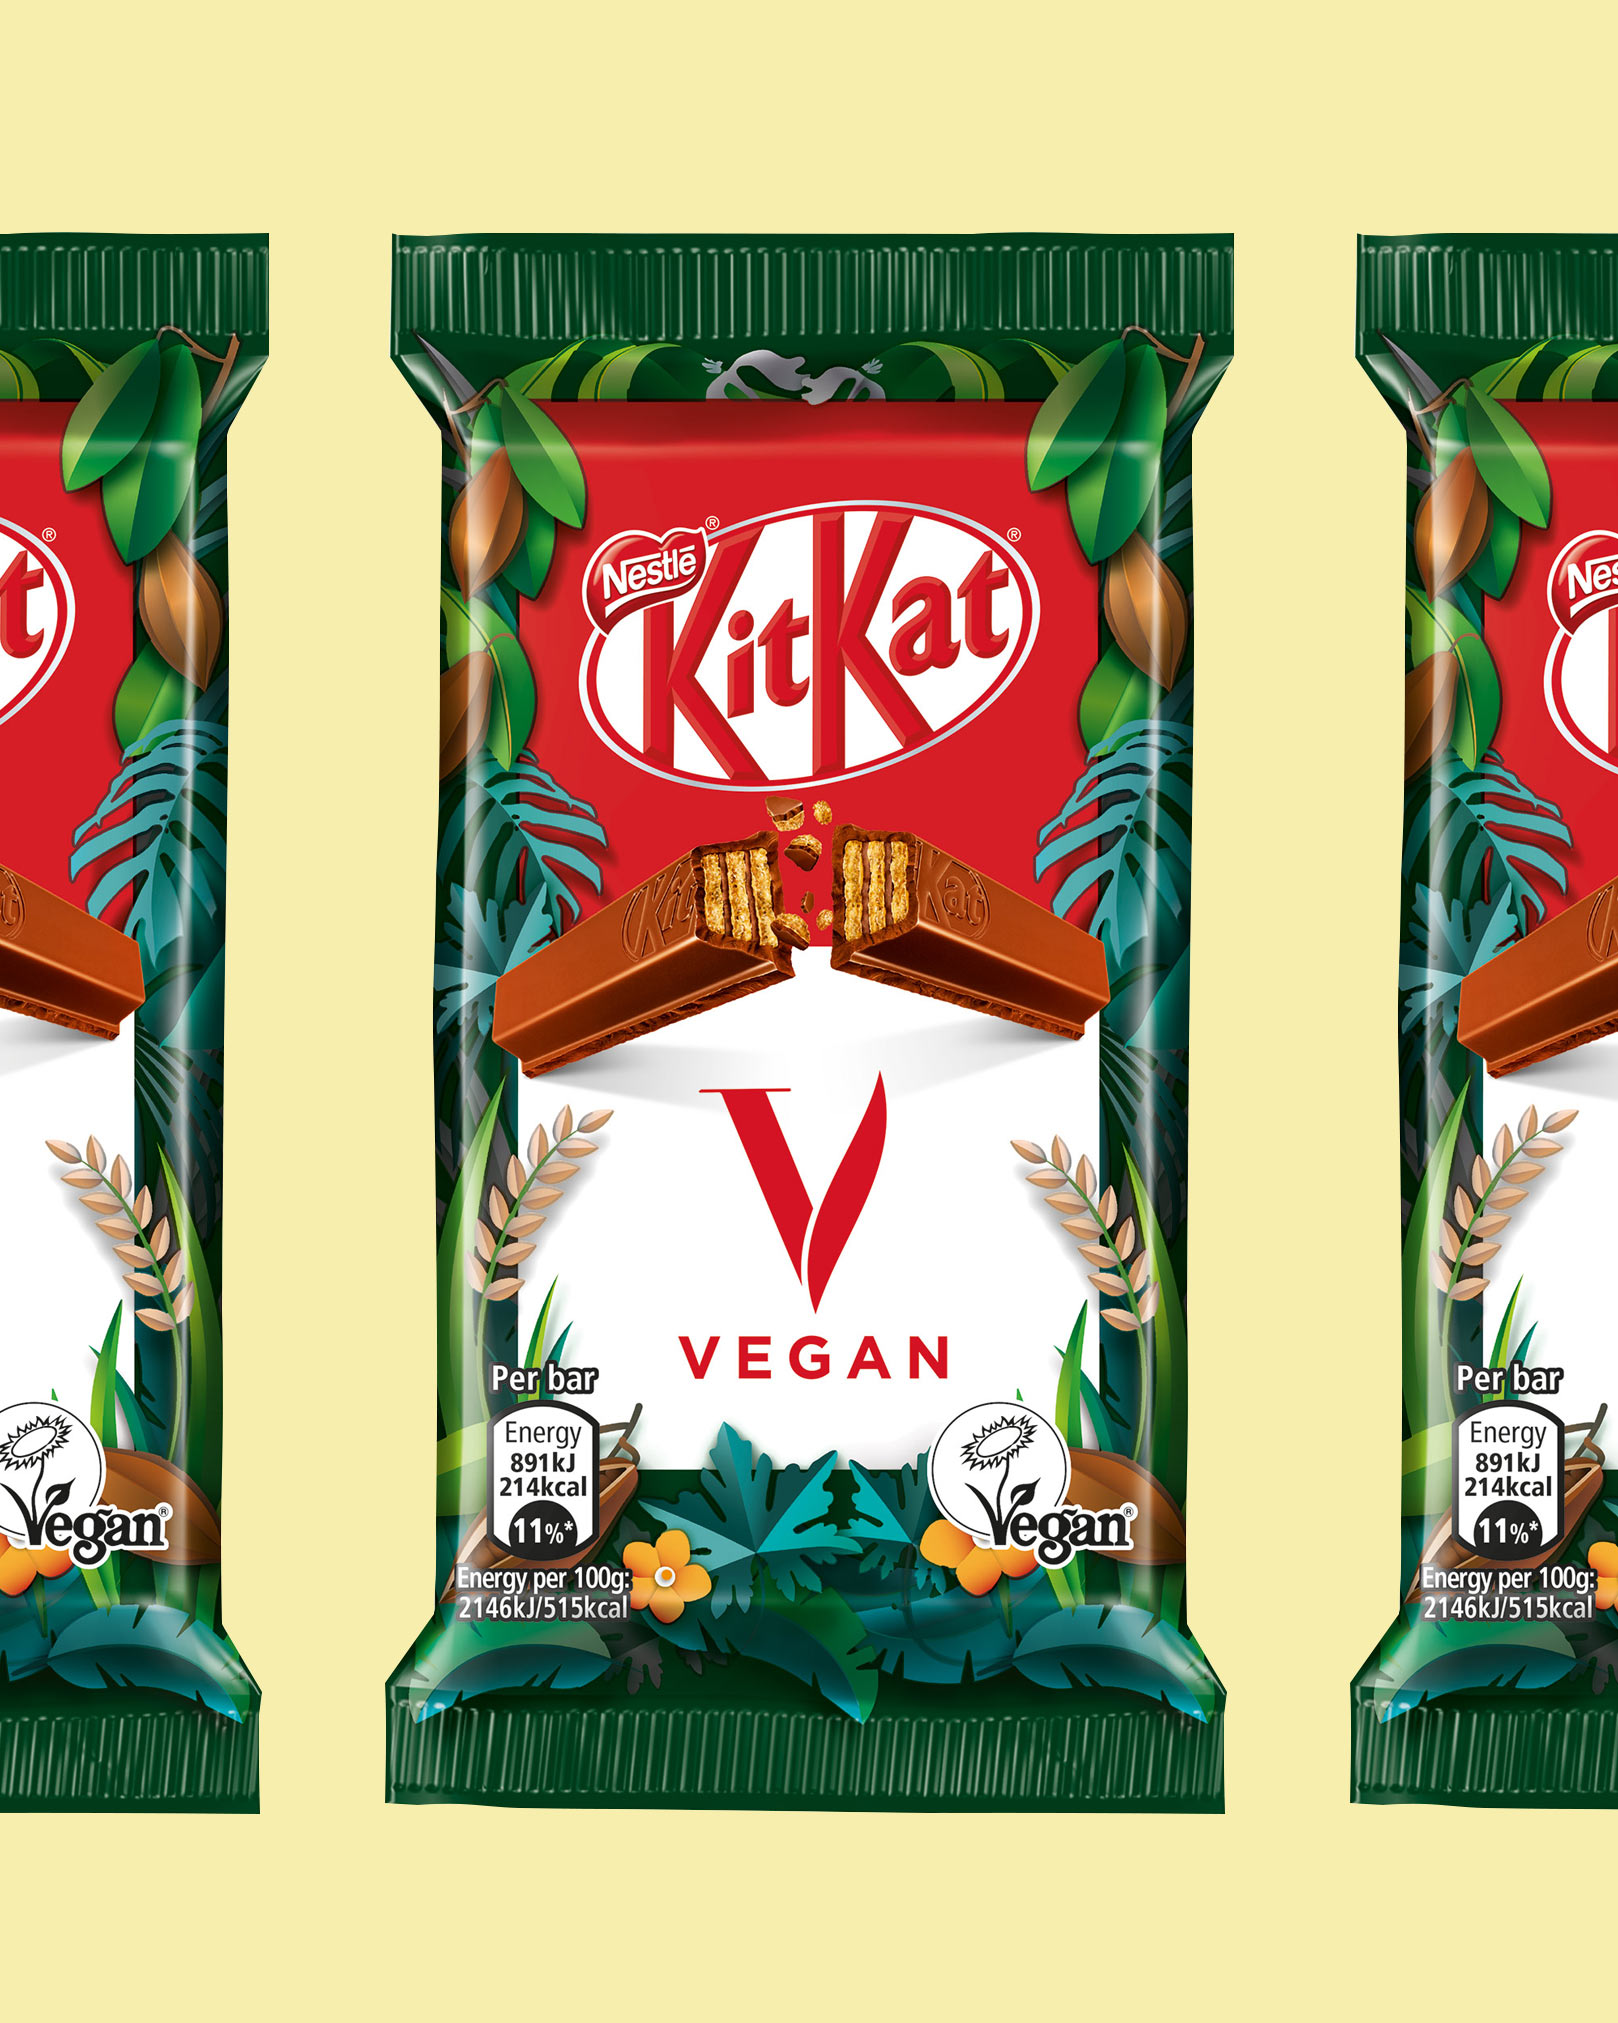 The vegan KitKat bar – Why it's annoying that big food coporates are jumping on the vegan train – Antagonist